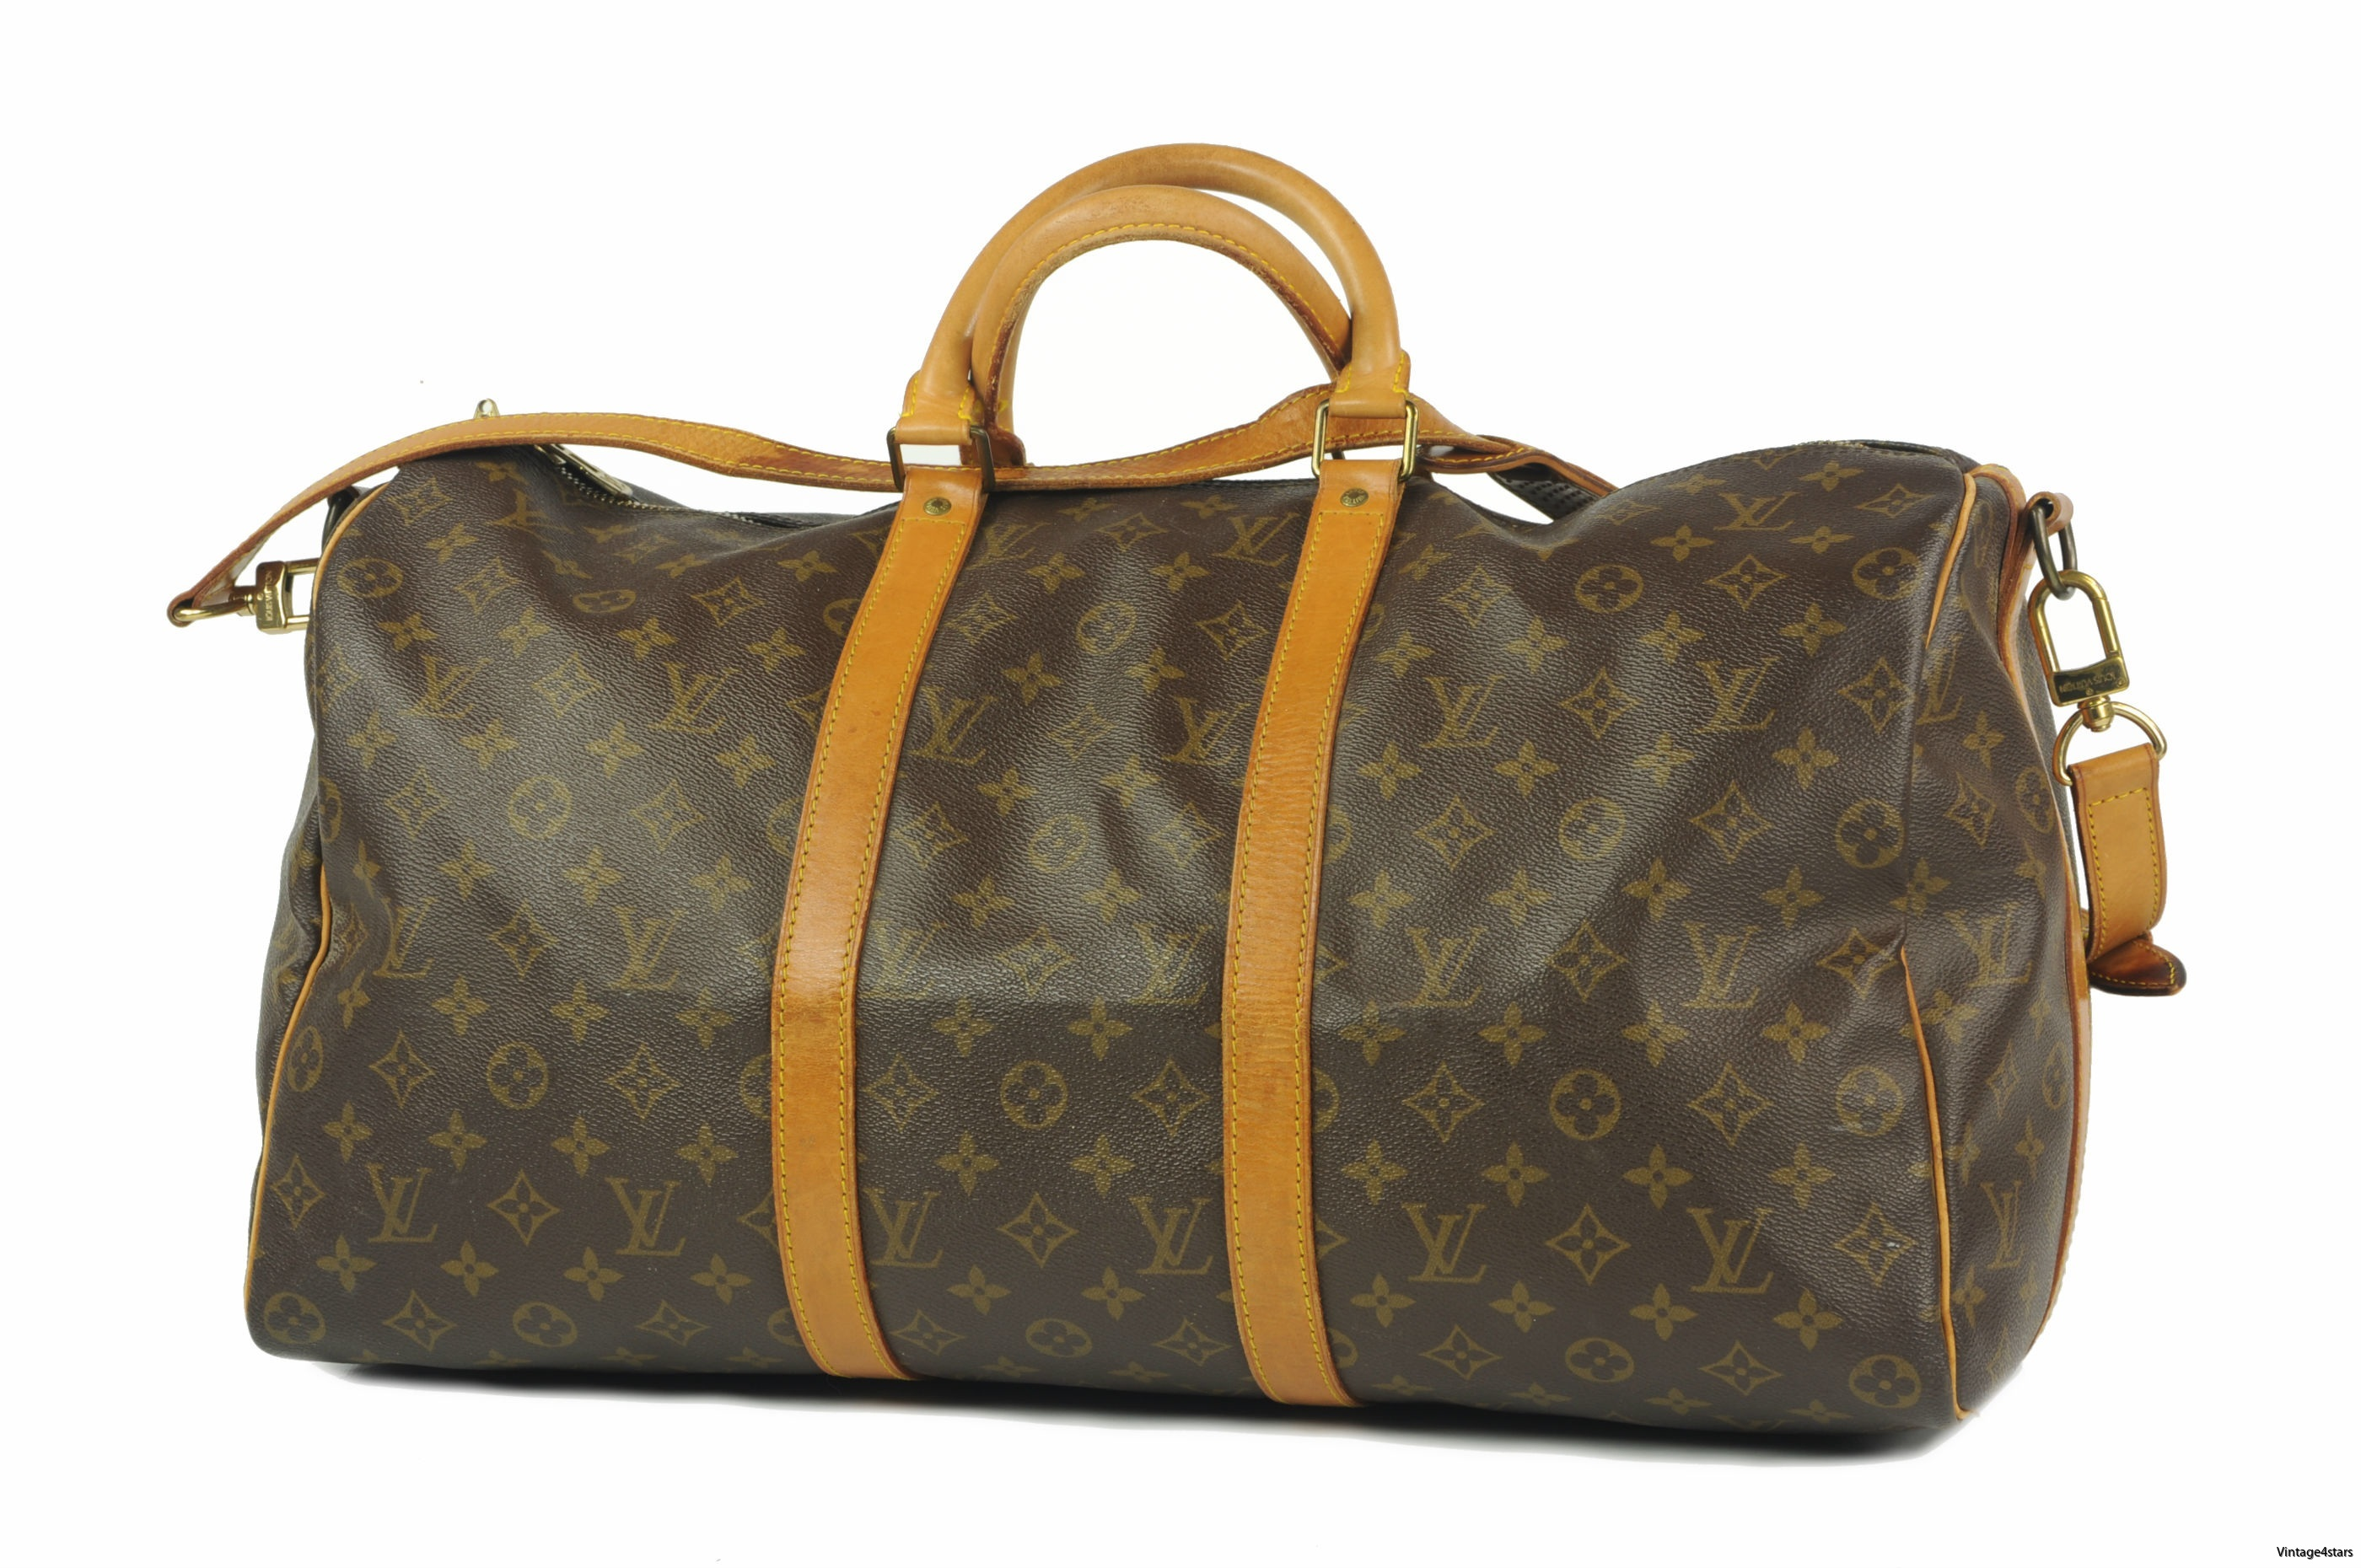 Louis Vuitton Keepall 50 2